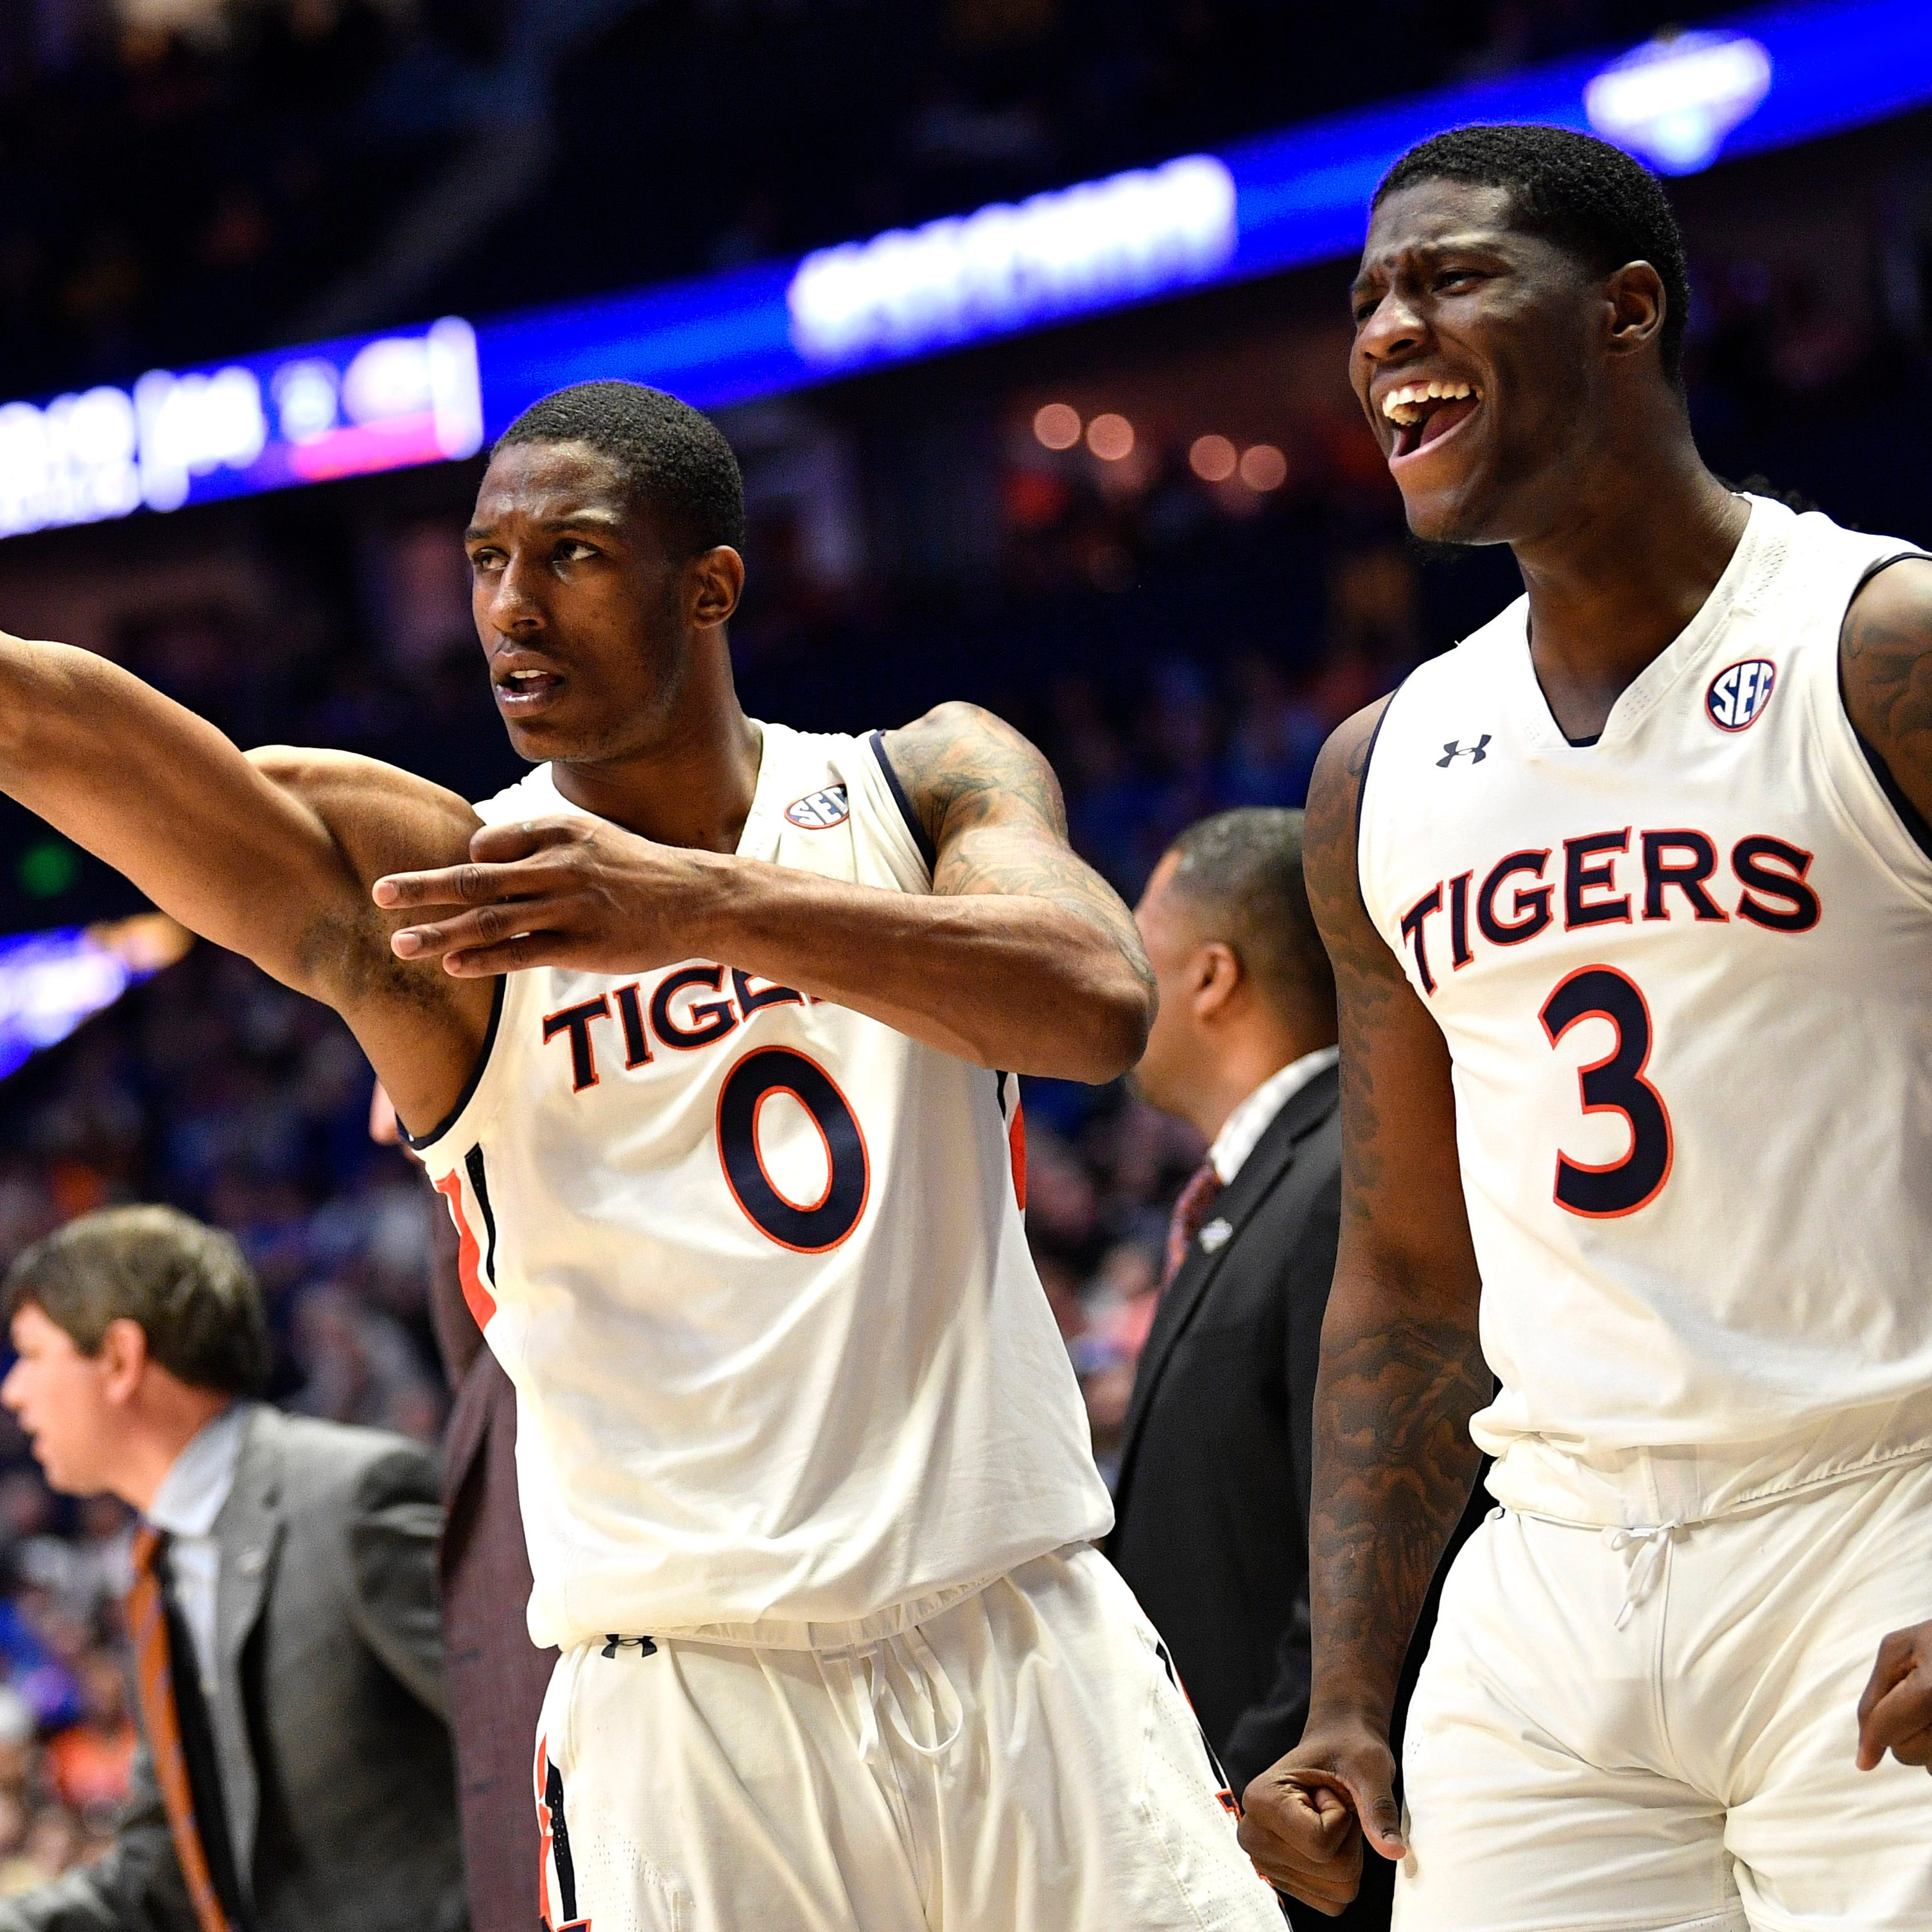 Tennessee is all that stands between Auburn, end of long SEC Tournament title drought